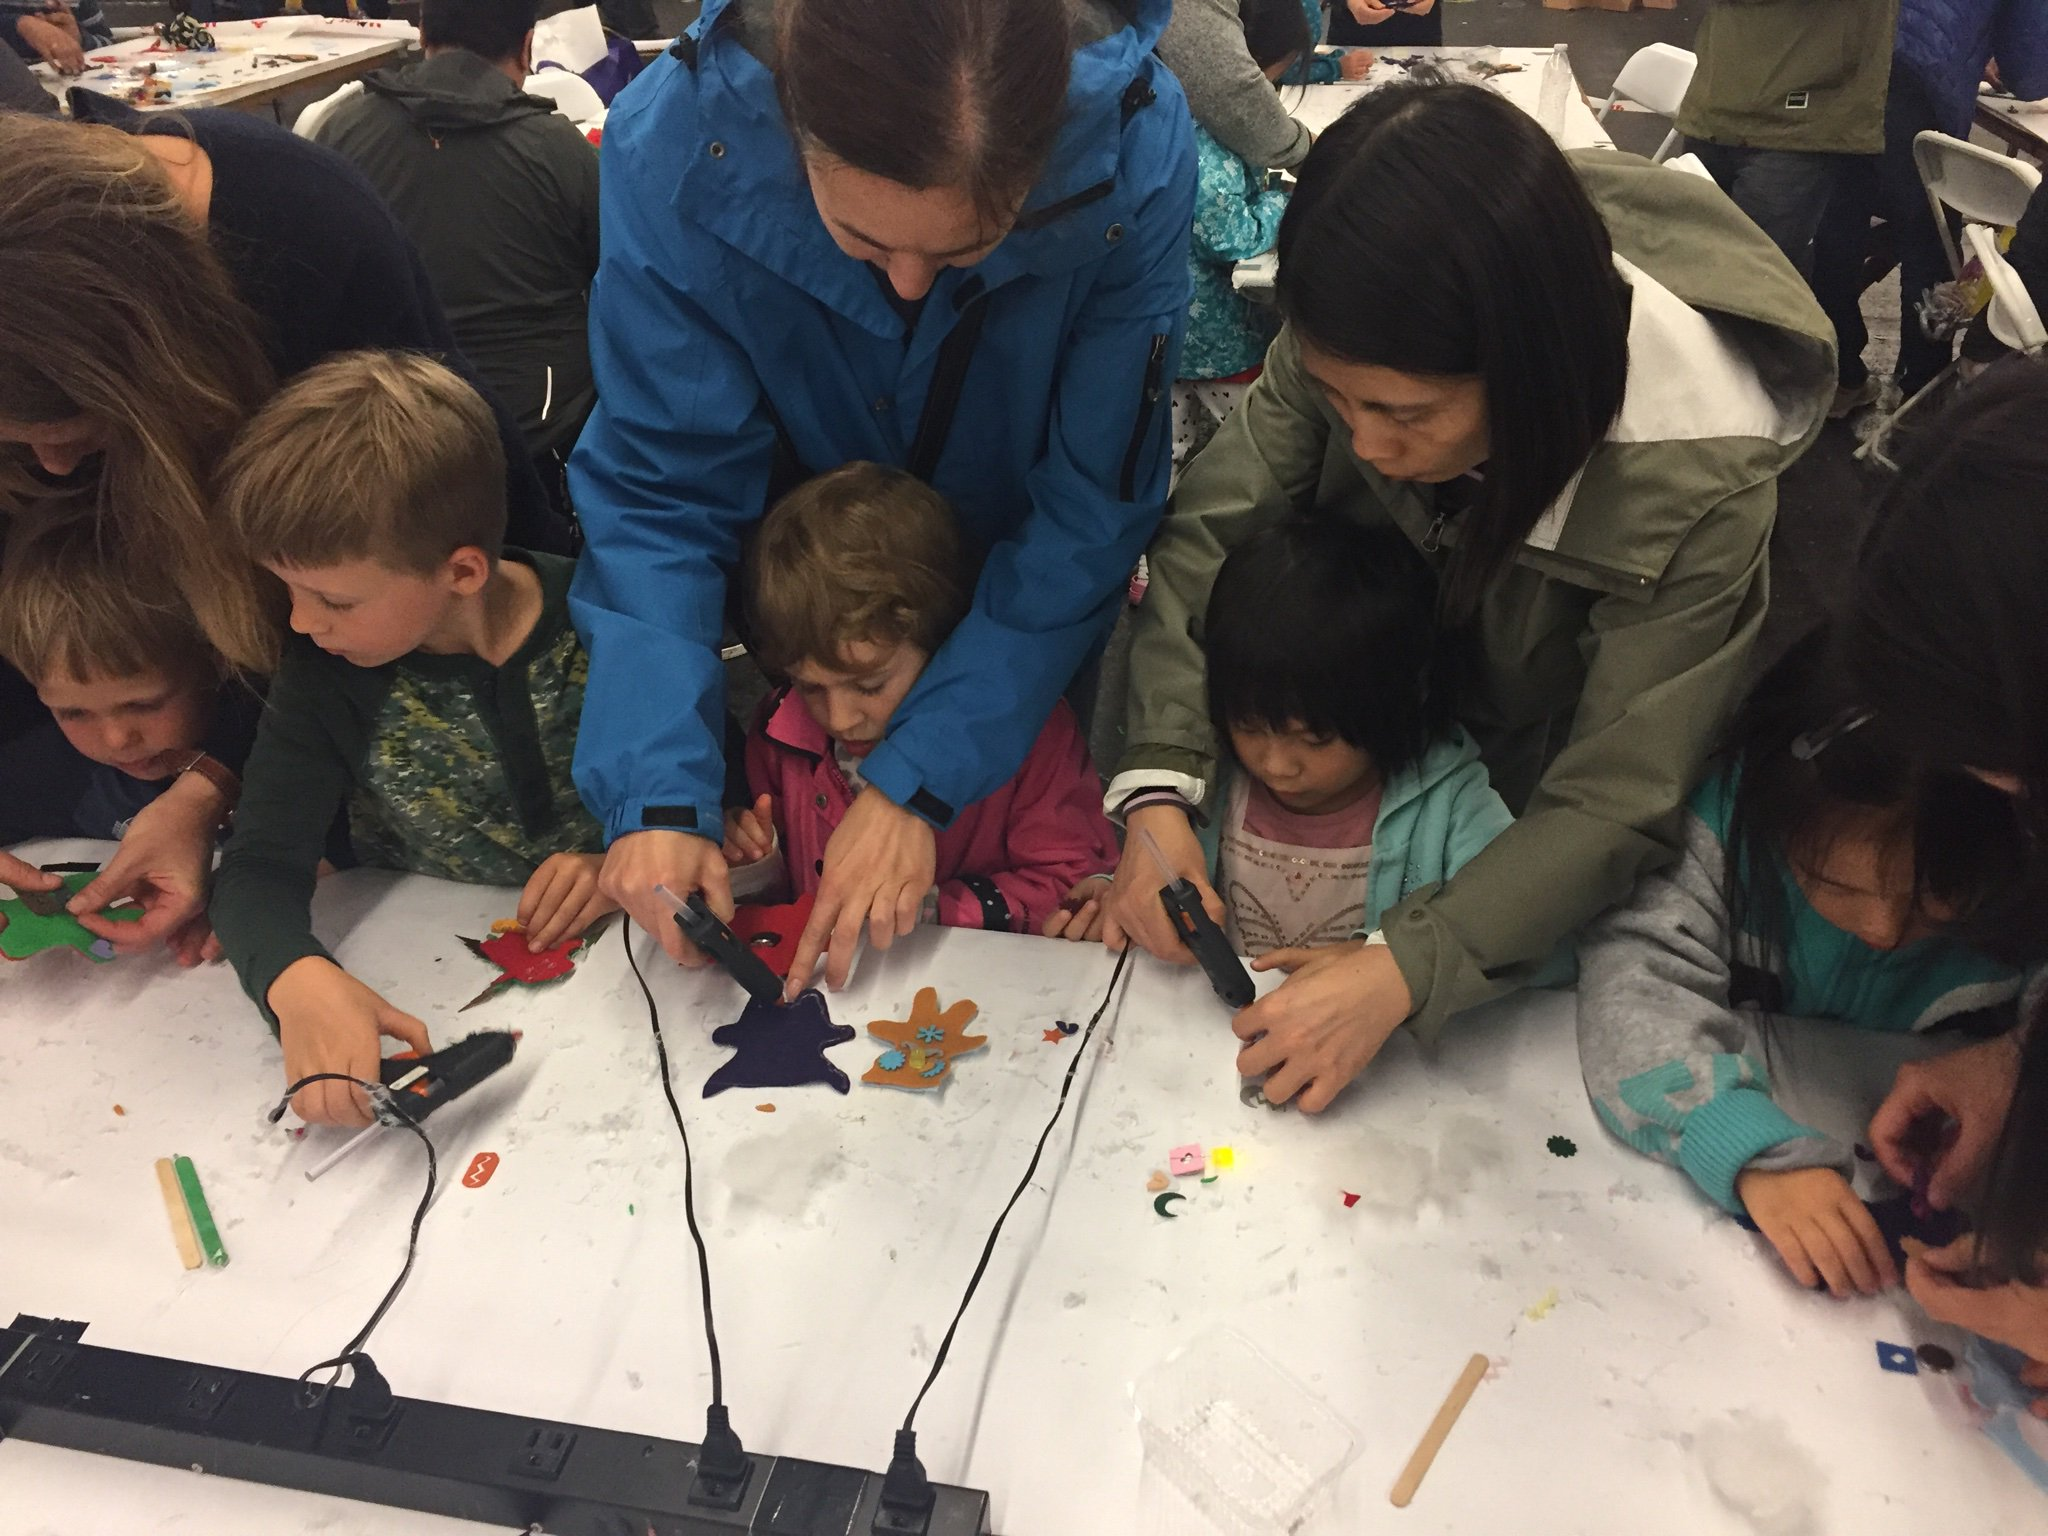 Young children using 3D pens at the show. Image via Maker Faire/Twitter.